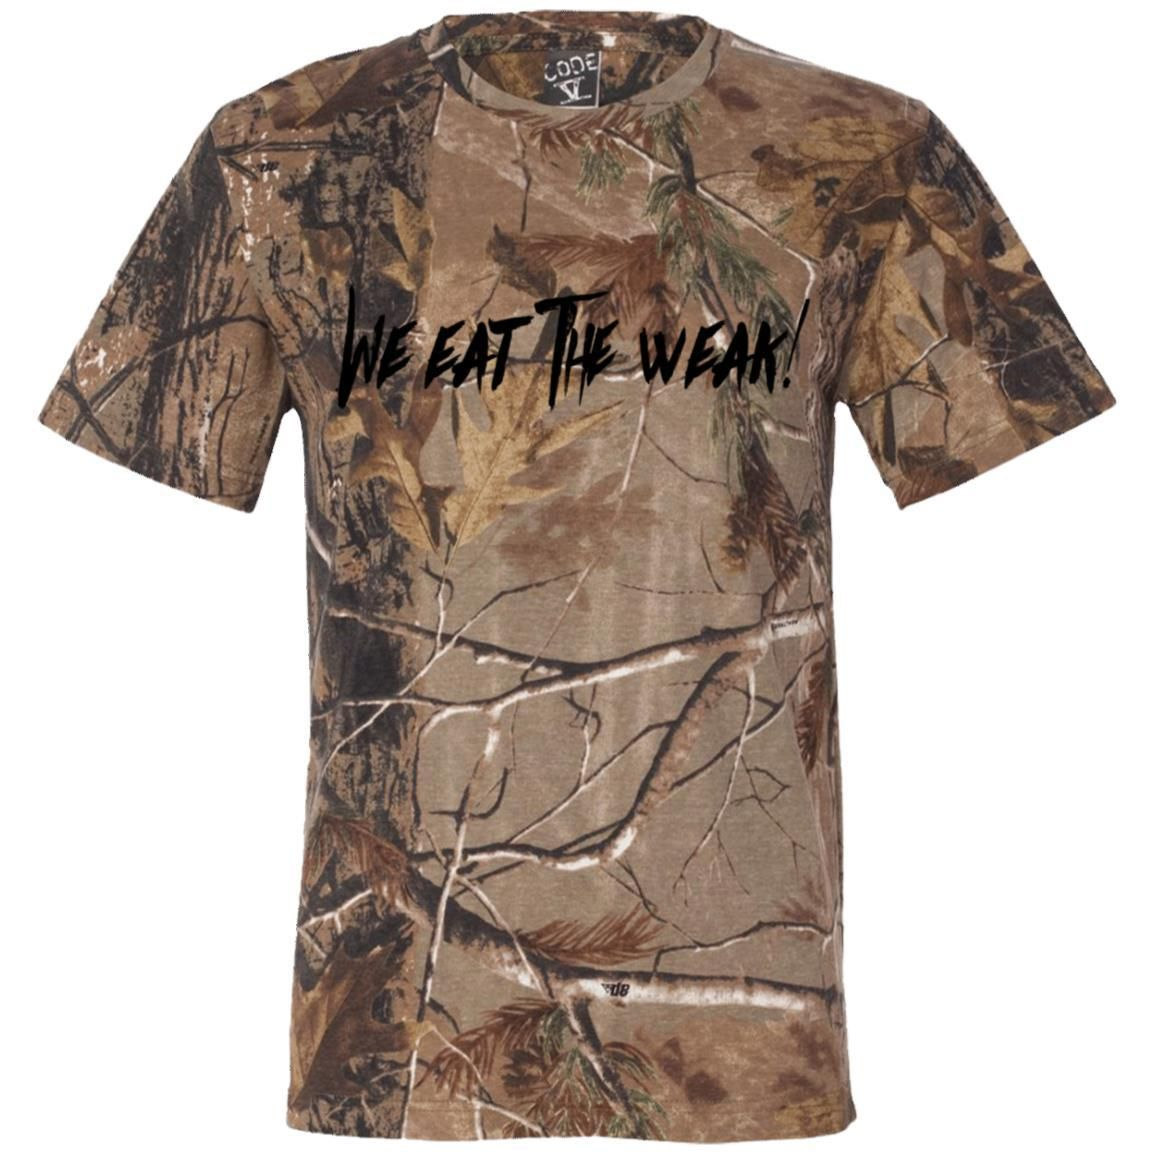 d1e6b58c7 We Eat The Weak Men's Camouflage Tee | Products | Camouflage t ...